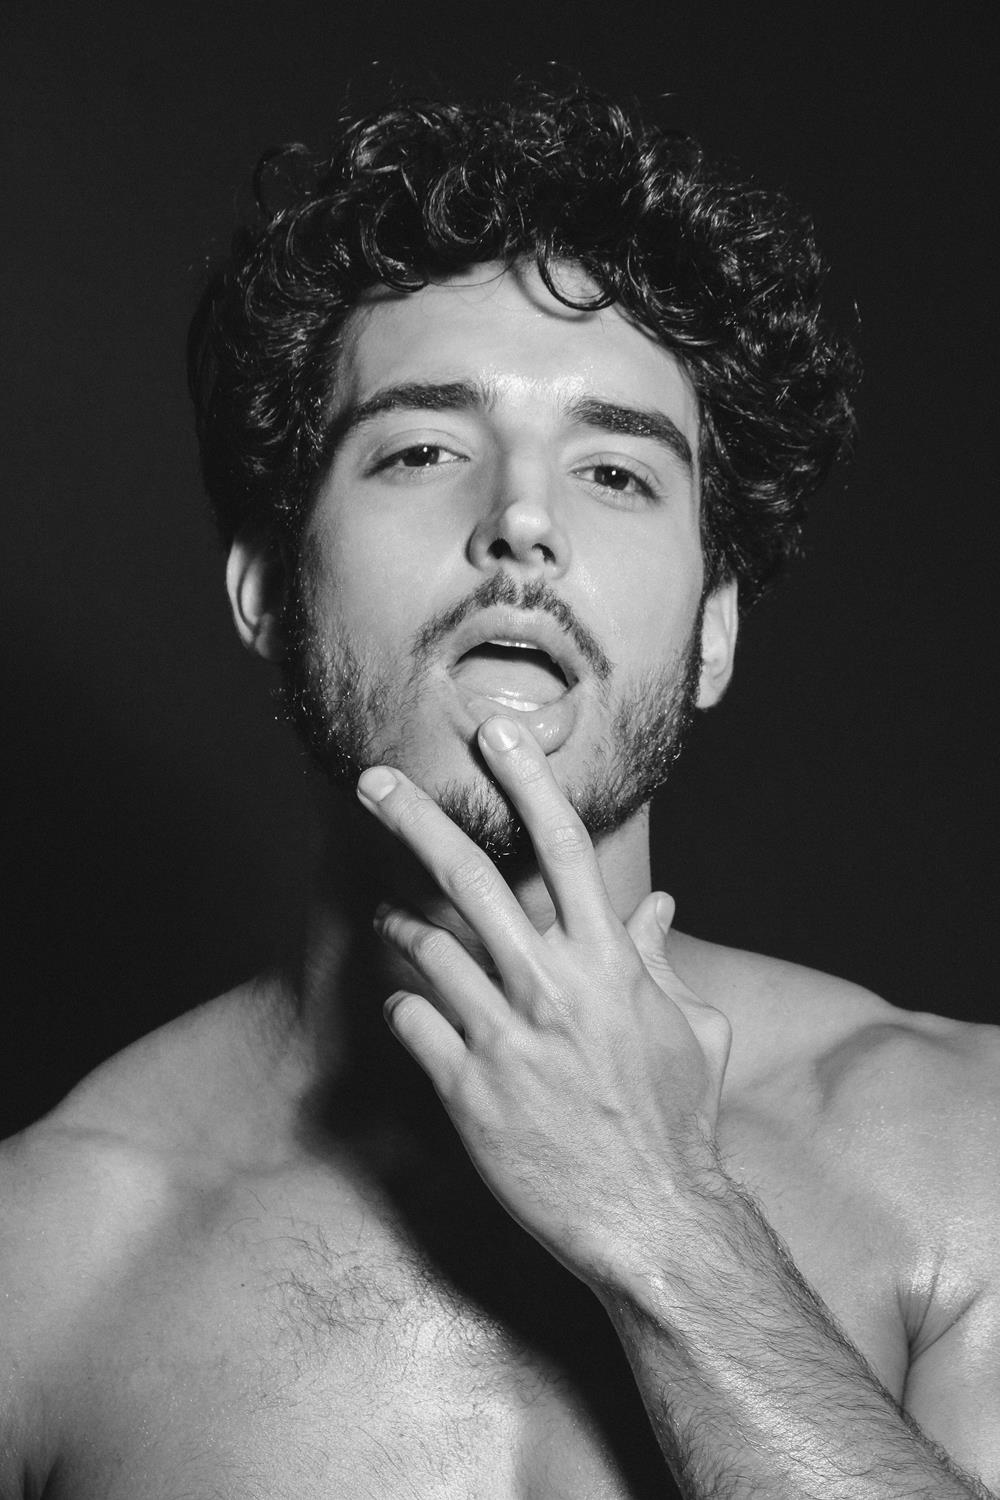 Bruno Barbieri by David Aldea for Brazilian Male Model